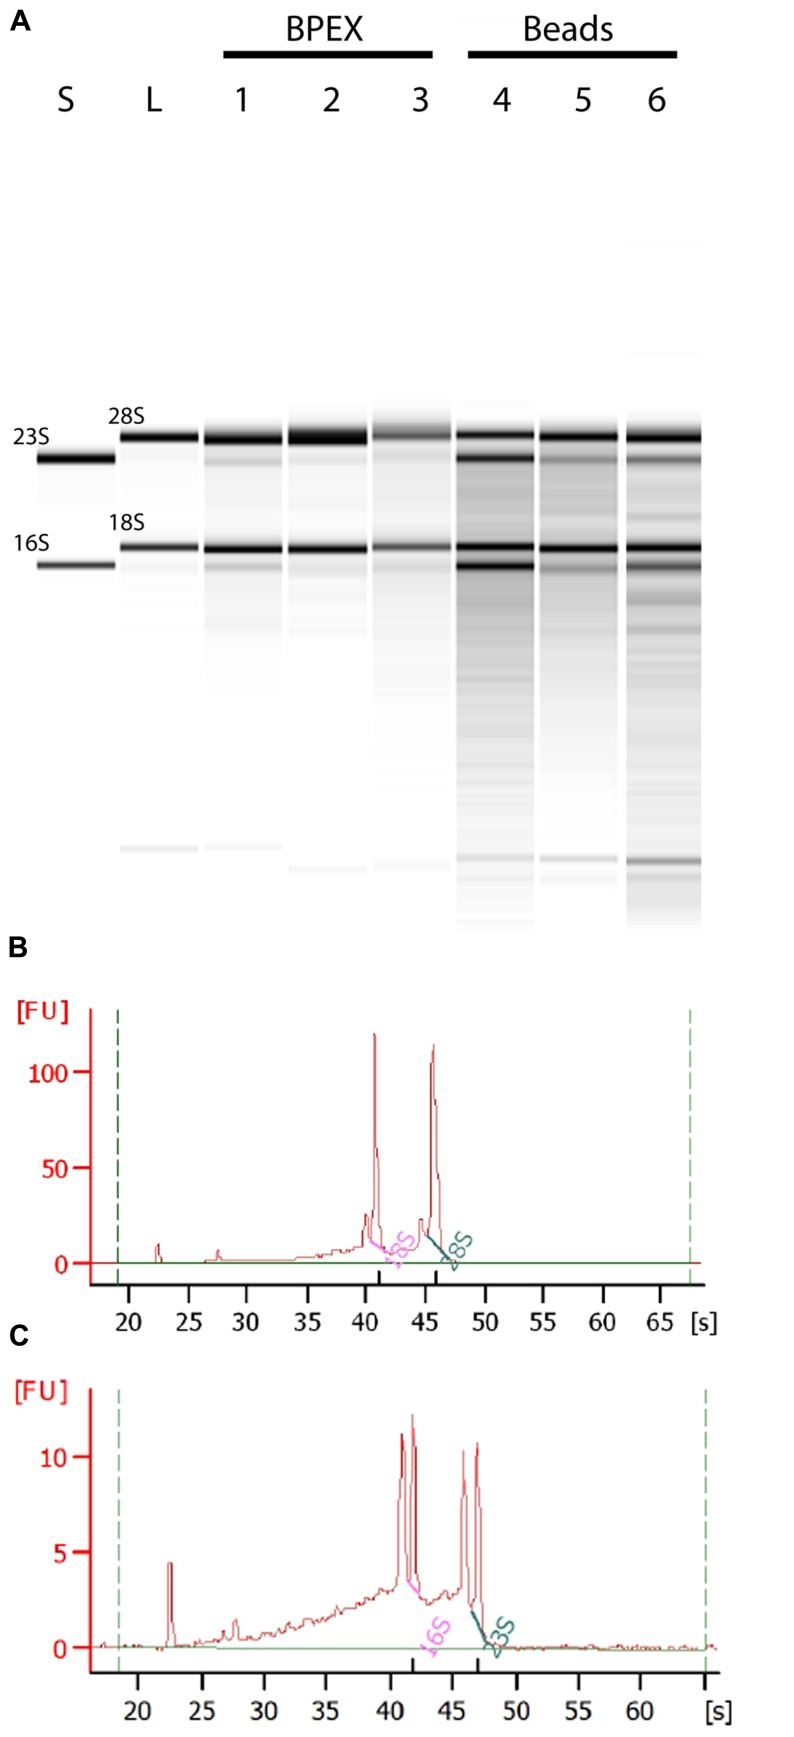 Total RNA from plant root extractions by BPEX and Bead/SDS/phenol methods . Intact plant roots were suspended in 20 ml of bacterial inoculum (OD 600 of 0.2) for 2 h at 18°C. Total RNA was extracted using either the BPEX or the Bead/SDS/phenol method and RNA quality was assessed by spectroscopy on a Bioanalyser 2100 machine (Agilent). (A) A montage of an electropherograph of the total RNA levels following extraction of inoculated plant material. The lanes show RNA from an in vitro culture of E. coli O157:H7 isolate Sakai only (lane S); uninfected lettuce roots (lane L); E. coli O157:H7 Sakai infected lettuce roots (Lane 1, 306 ng μl - 1 ; Lane 4, 119 ng μl - 1 ; Lane 5, 195 ng μl - 1 ); and E. coli O157:H7 Sakai infected spinach roots (Lane 2, 248 ng μl - 1 ; Lane 3, 301 ng μl - 1 ; Lane 6, 141 ng μl - 1 ). Lanes 1, 2, and 3 show extraction using the BPEX method, and Lanes 4, 5, and 6 using the Bead method. The samples were run alongside a commercial RNA transcript ladder (0.2, 0.5, 1.0, 2.0, 4.0, and 6.0 kb, Agilent); the 16S and 23S (bacterial), and 18S and 28S (plant) r RNA bands are indicated. Electropherogram of E. coli O157:H7 Sakai infected lettuce roots extracted with (B) the BPEX method (sample derived from lane 1) or with (C) the novel Bead/SDS/phenol method (sample derived from lane 4). The uninfected spinach control was similar to lettuce (lane L) (not shown).